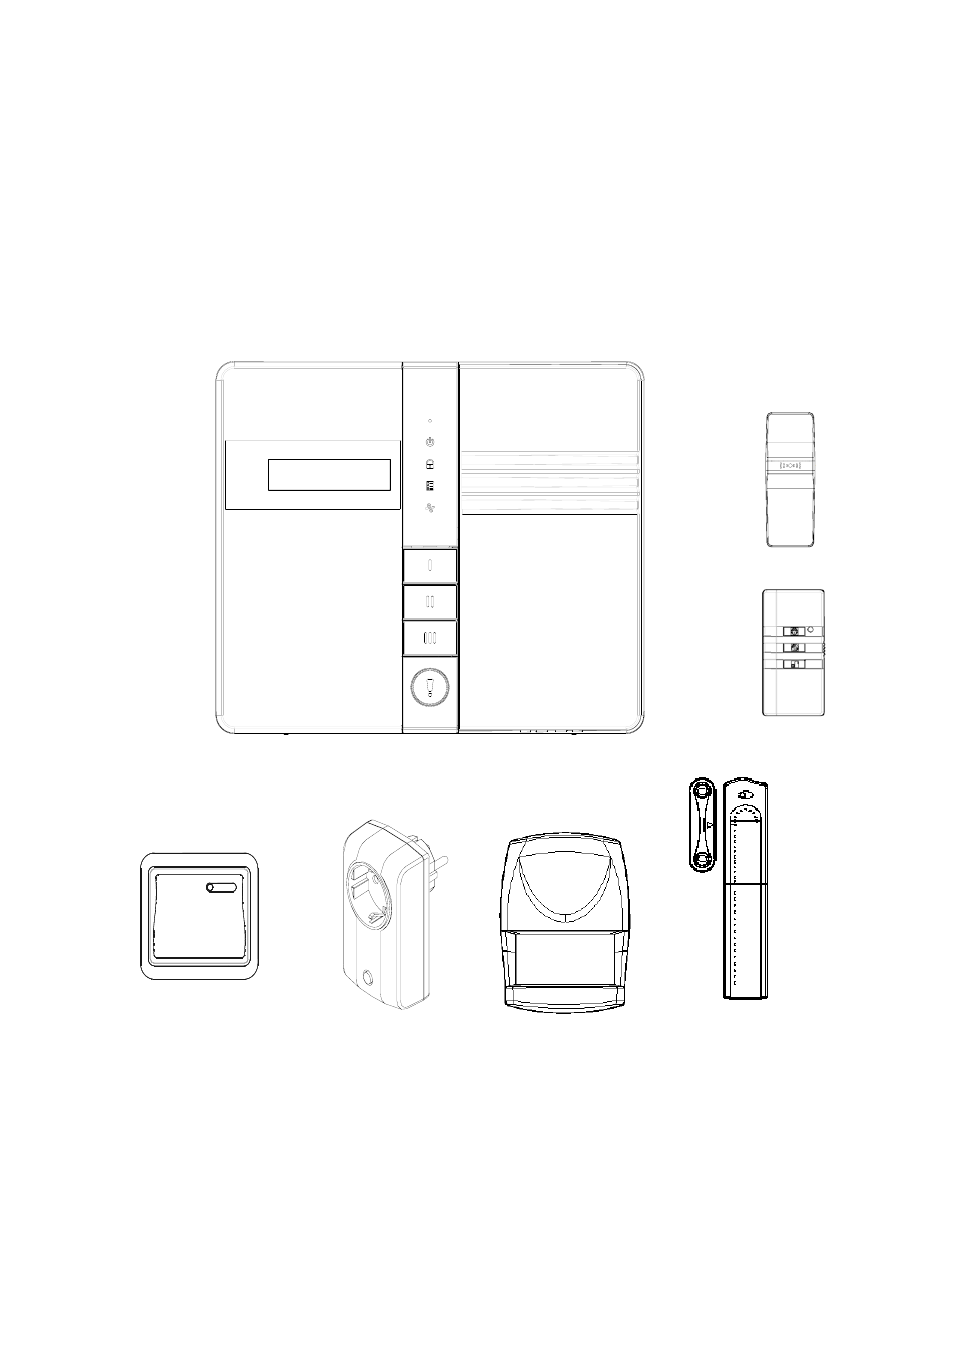 elro his20s security  u0026 home automation system expanded